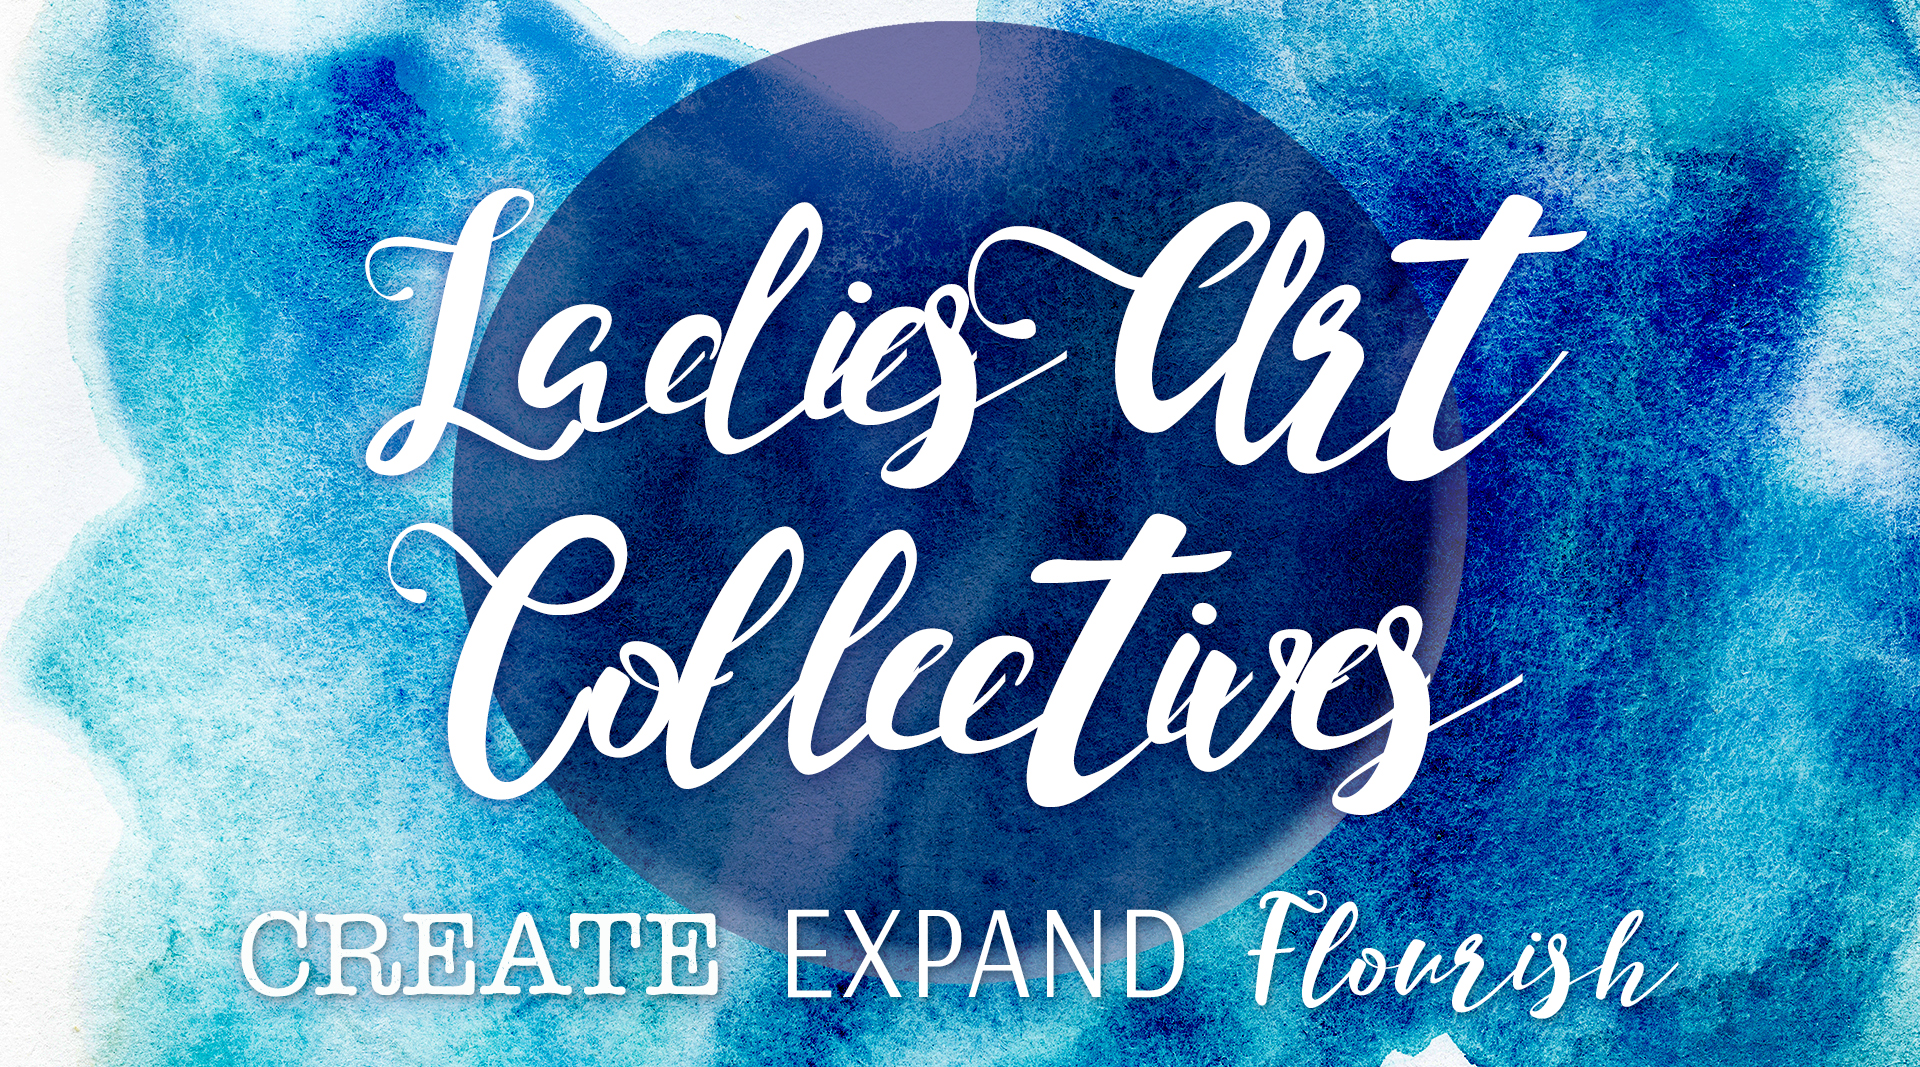 Ladies Collectives Picture